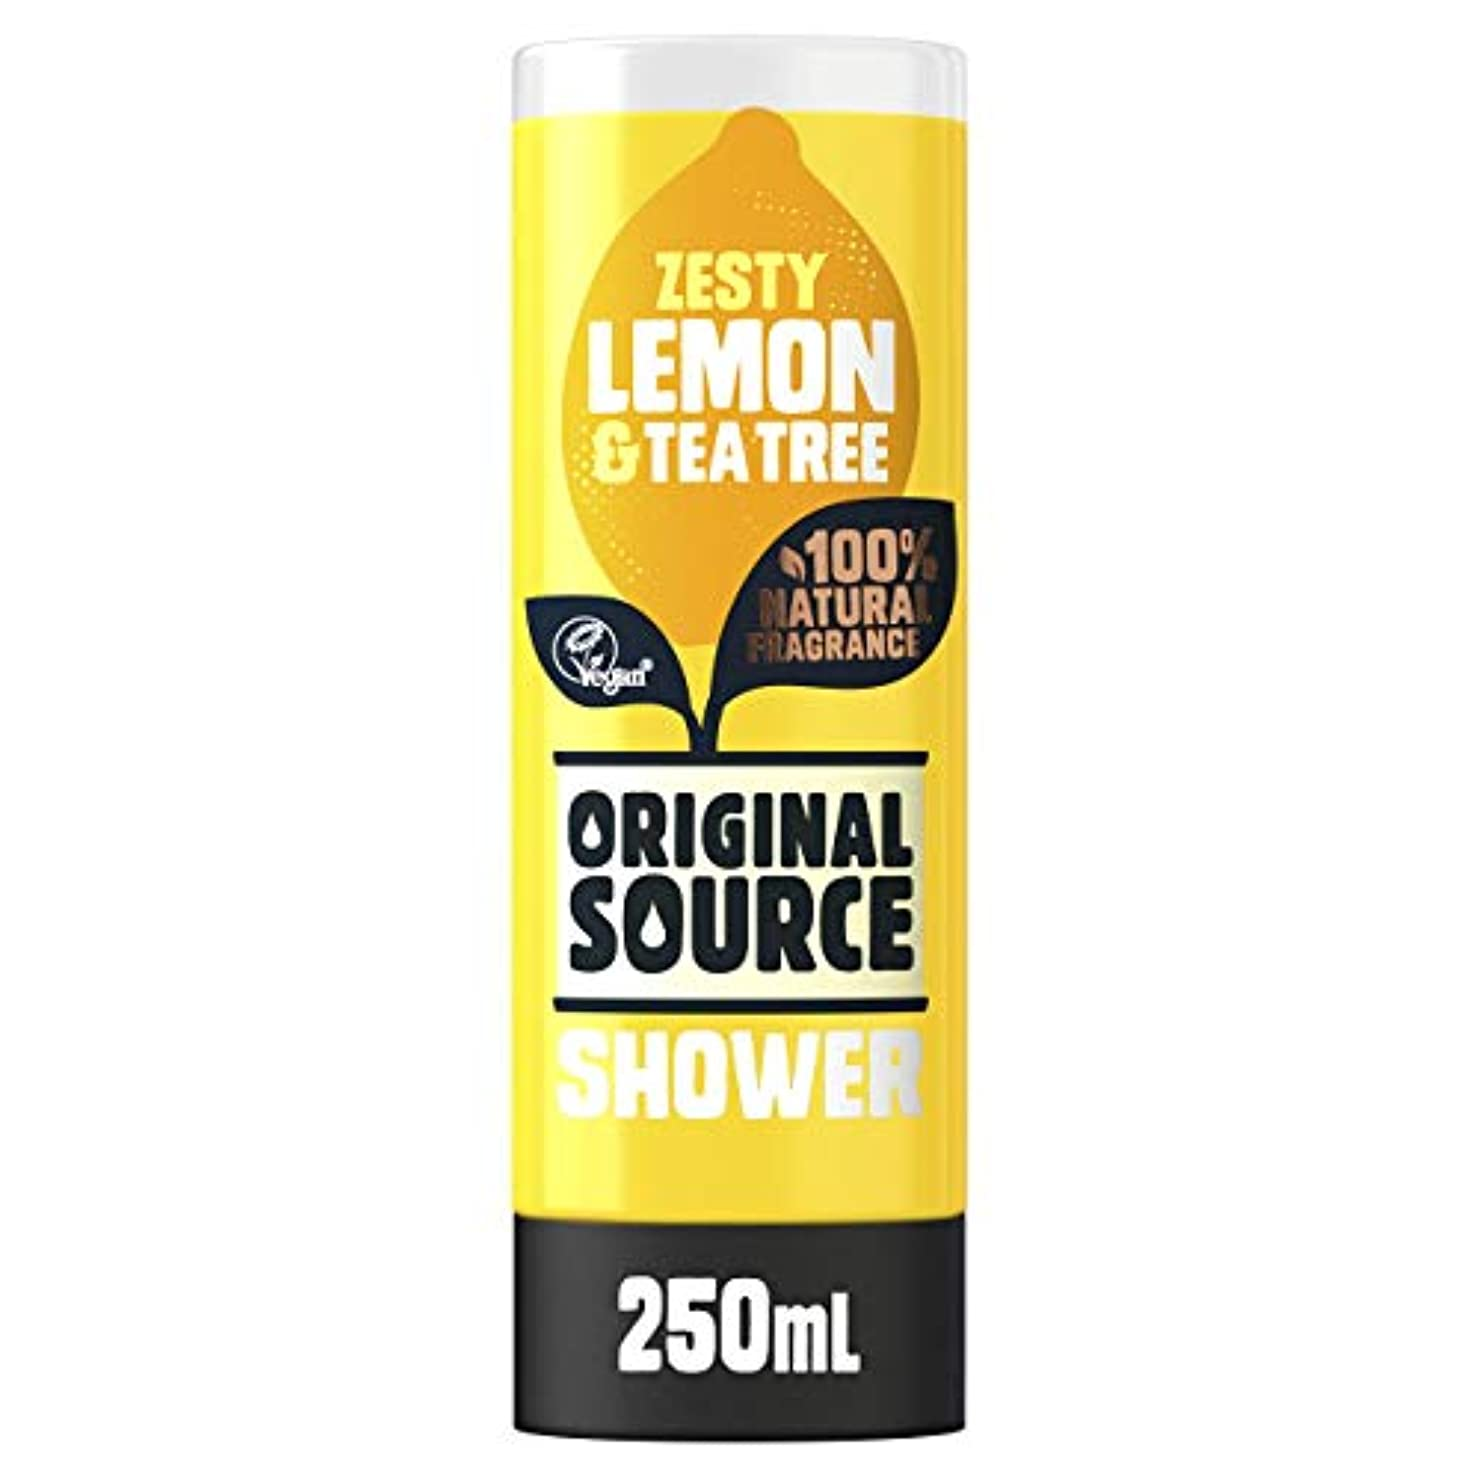 発言するスケッチ品種Cussons Lemon and Tea Tree Original Source Shower Gel by PZ CUSSONS (UK) LTD